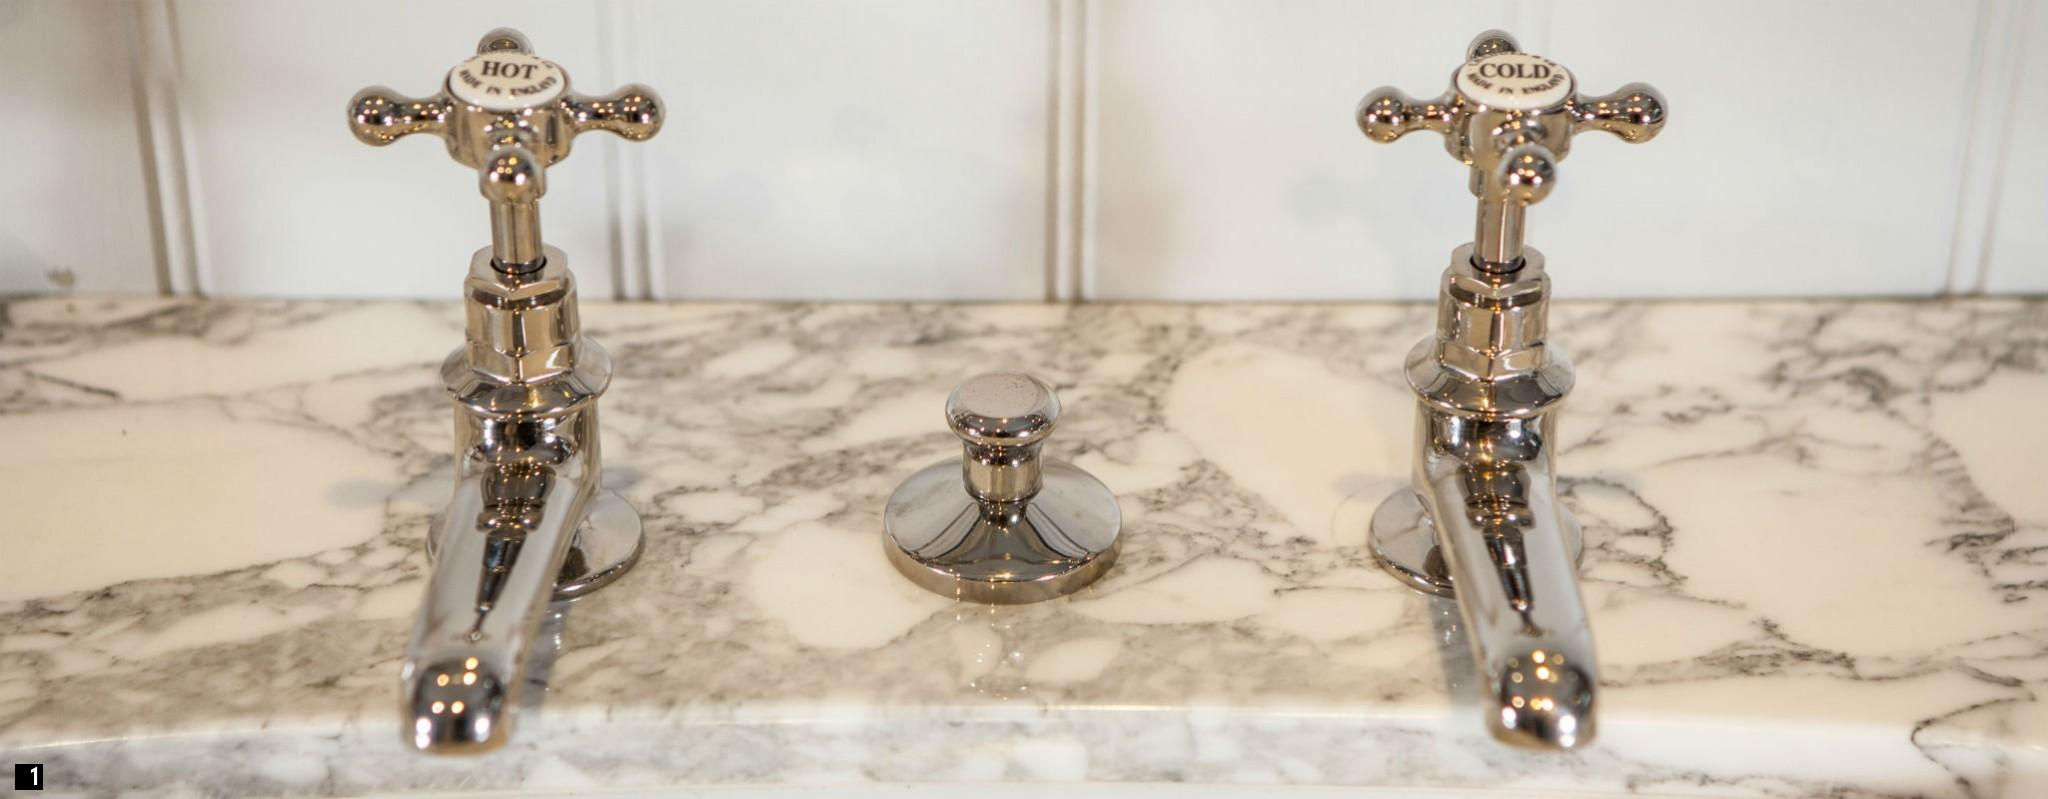 Chadder Nickel Vintage luxury Taps and Fittings Victorian Luxury Bathrooms